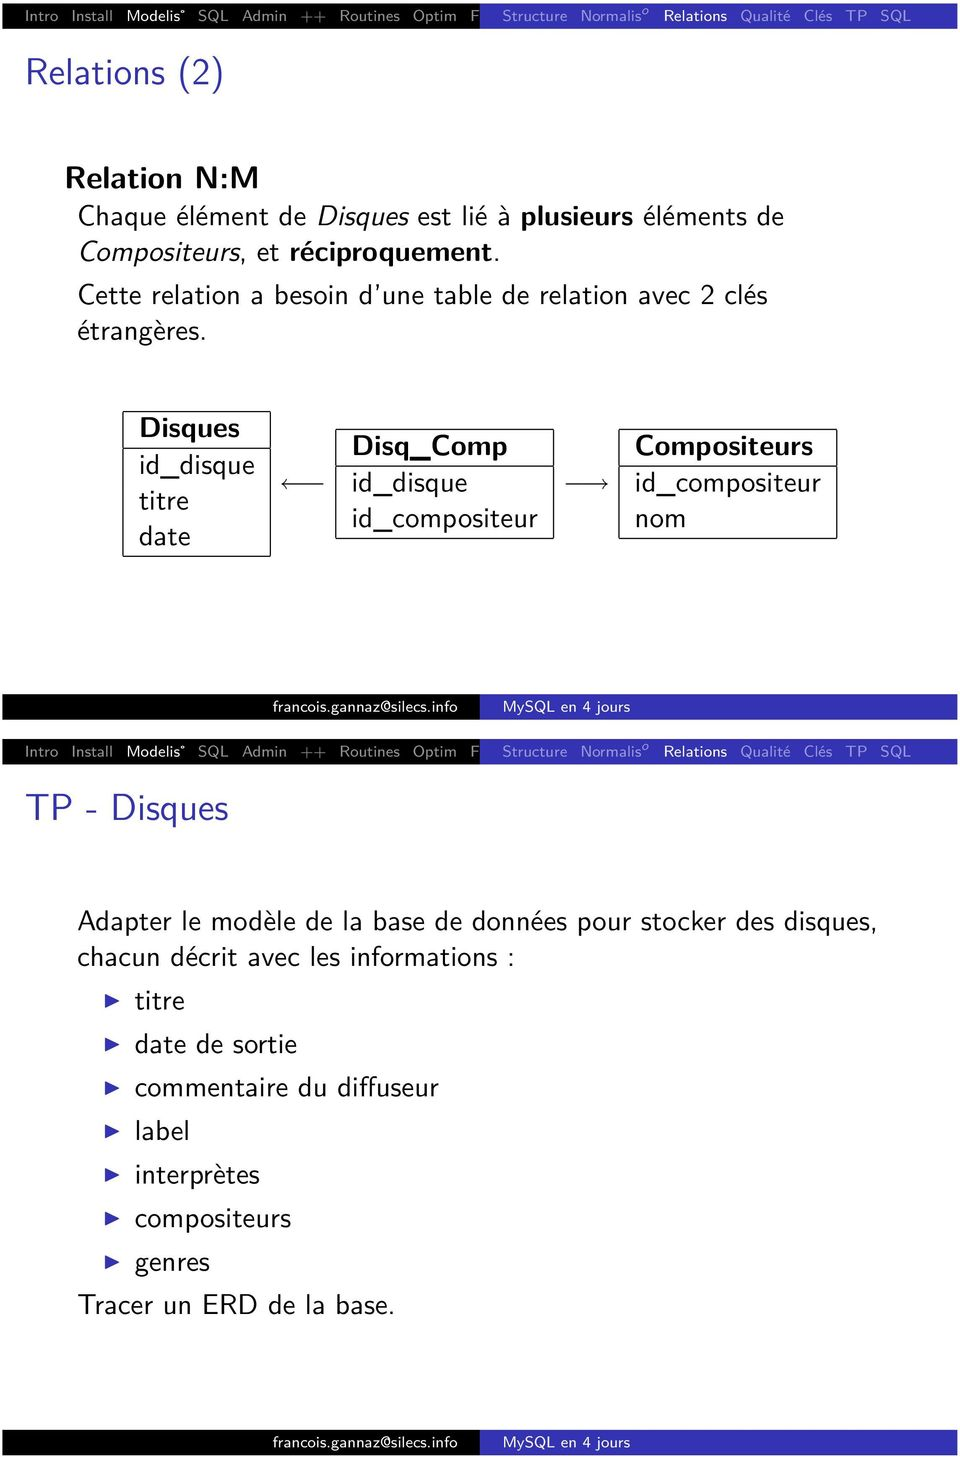 Disques id_disque titre date Disq_Comp id_disque id_compositeur Compositeurs id_compositeur nom Intro Install Modelis SQL Admin ++ Routines Optim Fin Structure Normalis o Relations